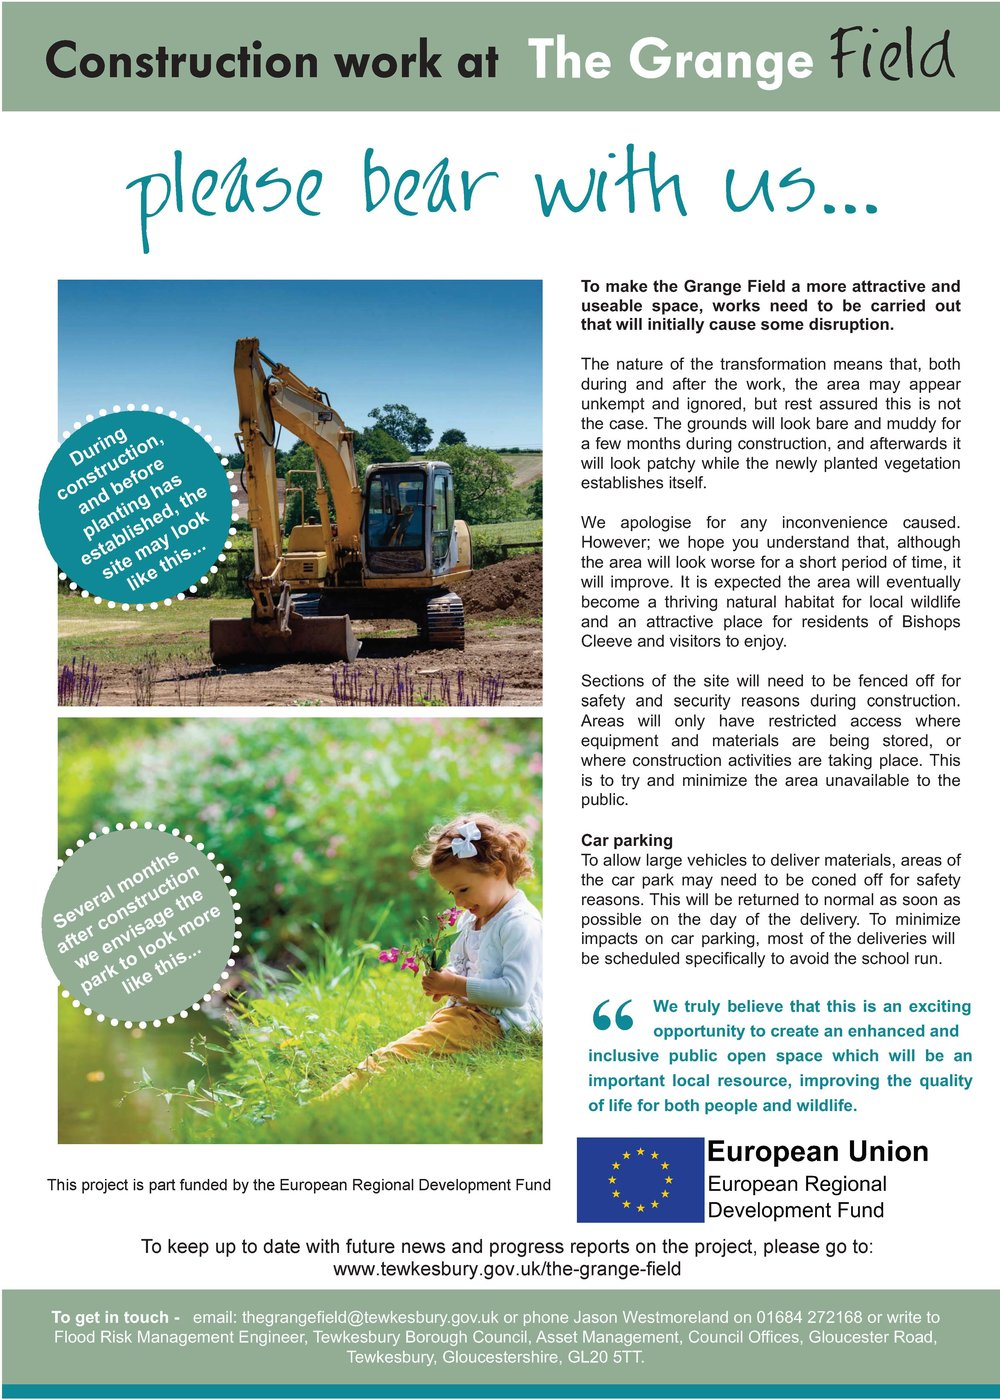 The Grange Construction poster ERDF_V1.3a.jpg